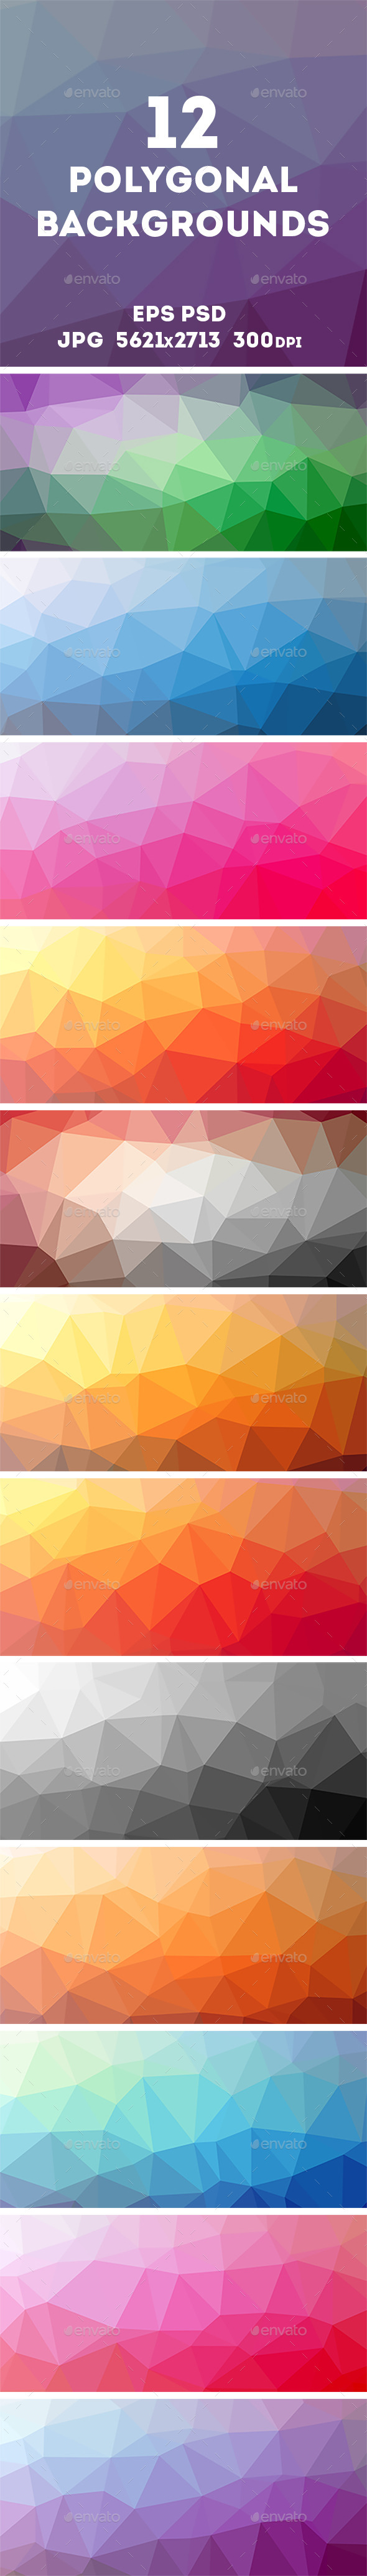 GraphicRiver 12 Polygonal Backgrounds 10414867